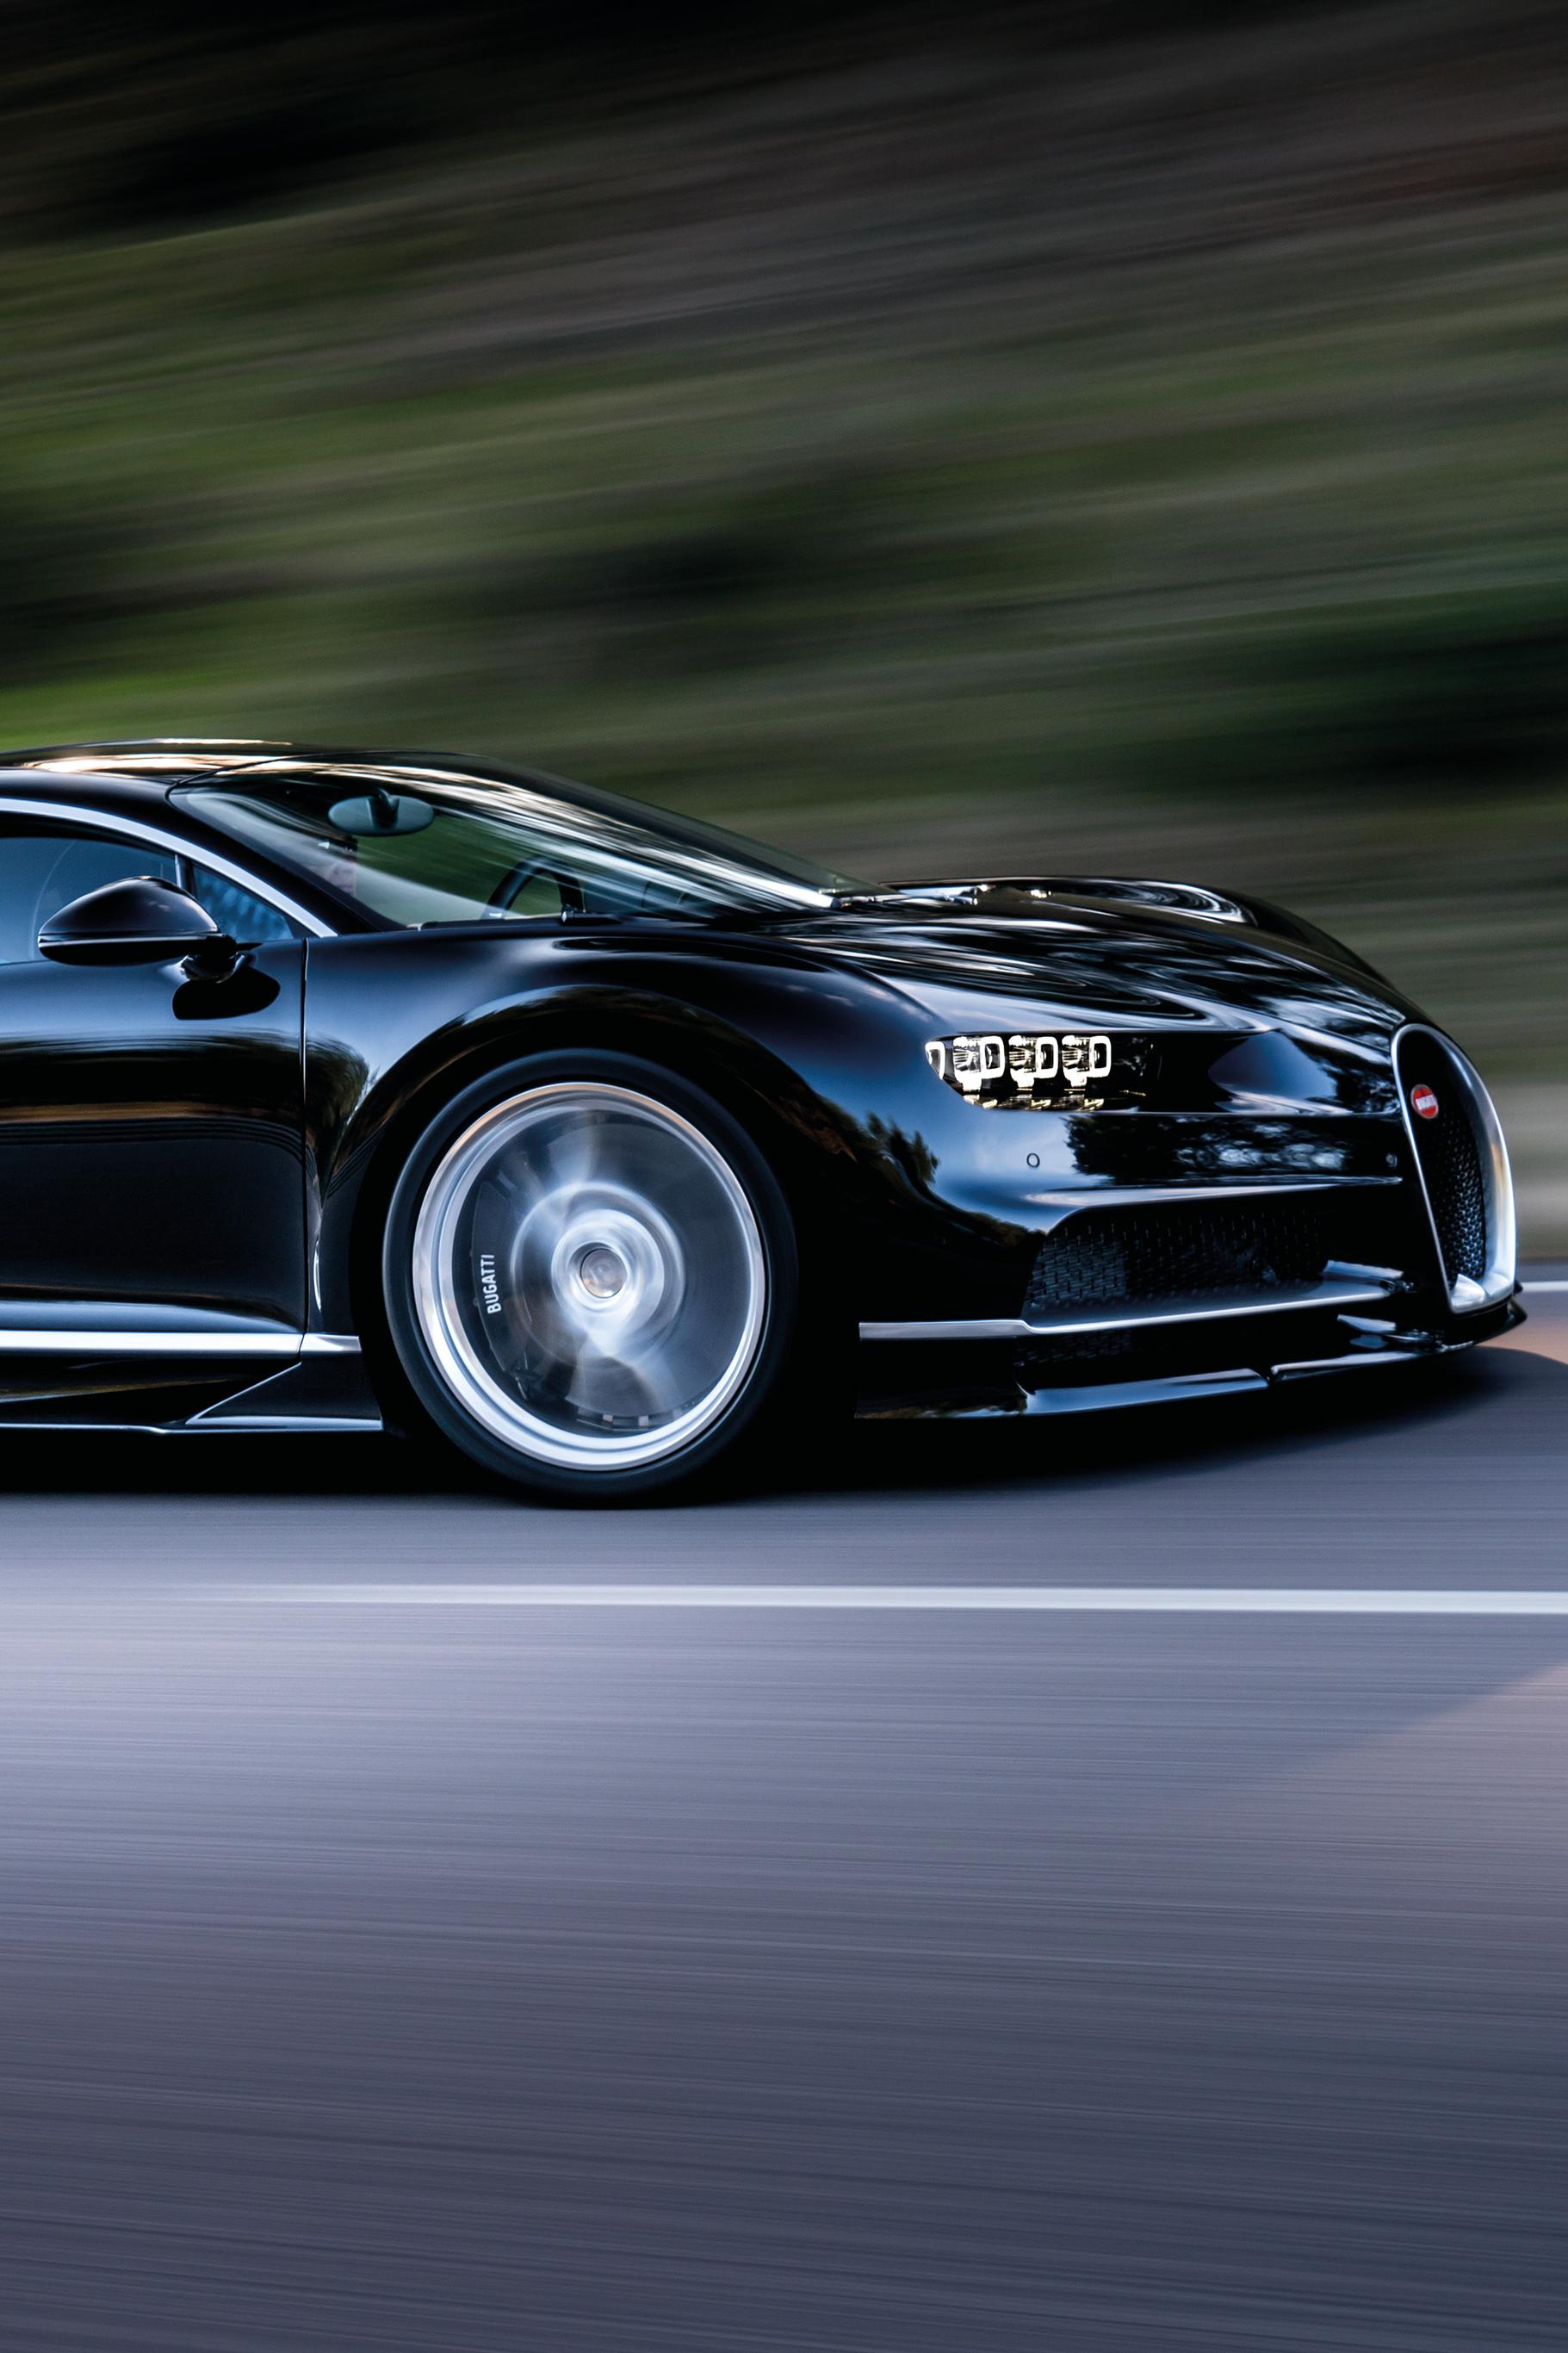 chiron bugatti sportscar racing motor racer speed luxury auto